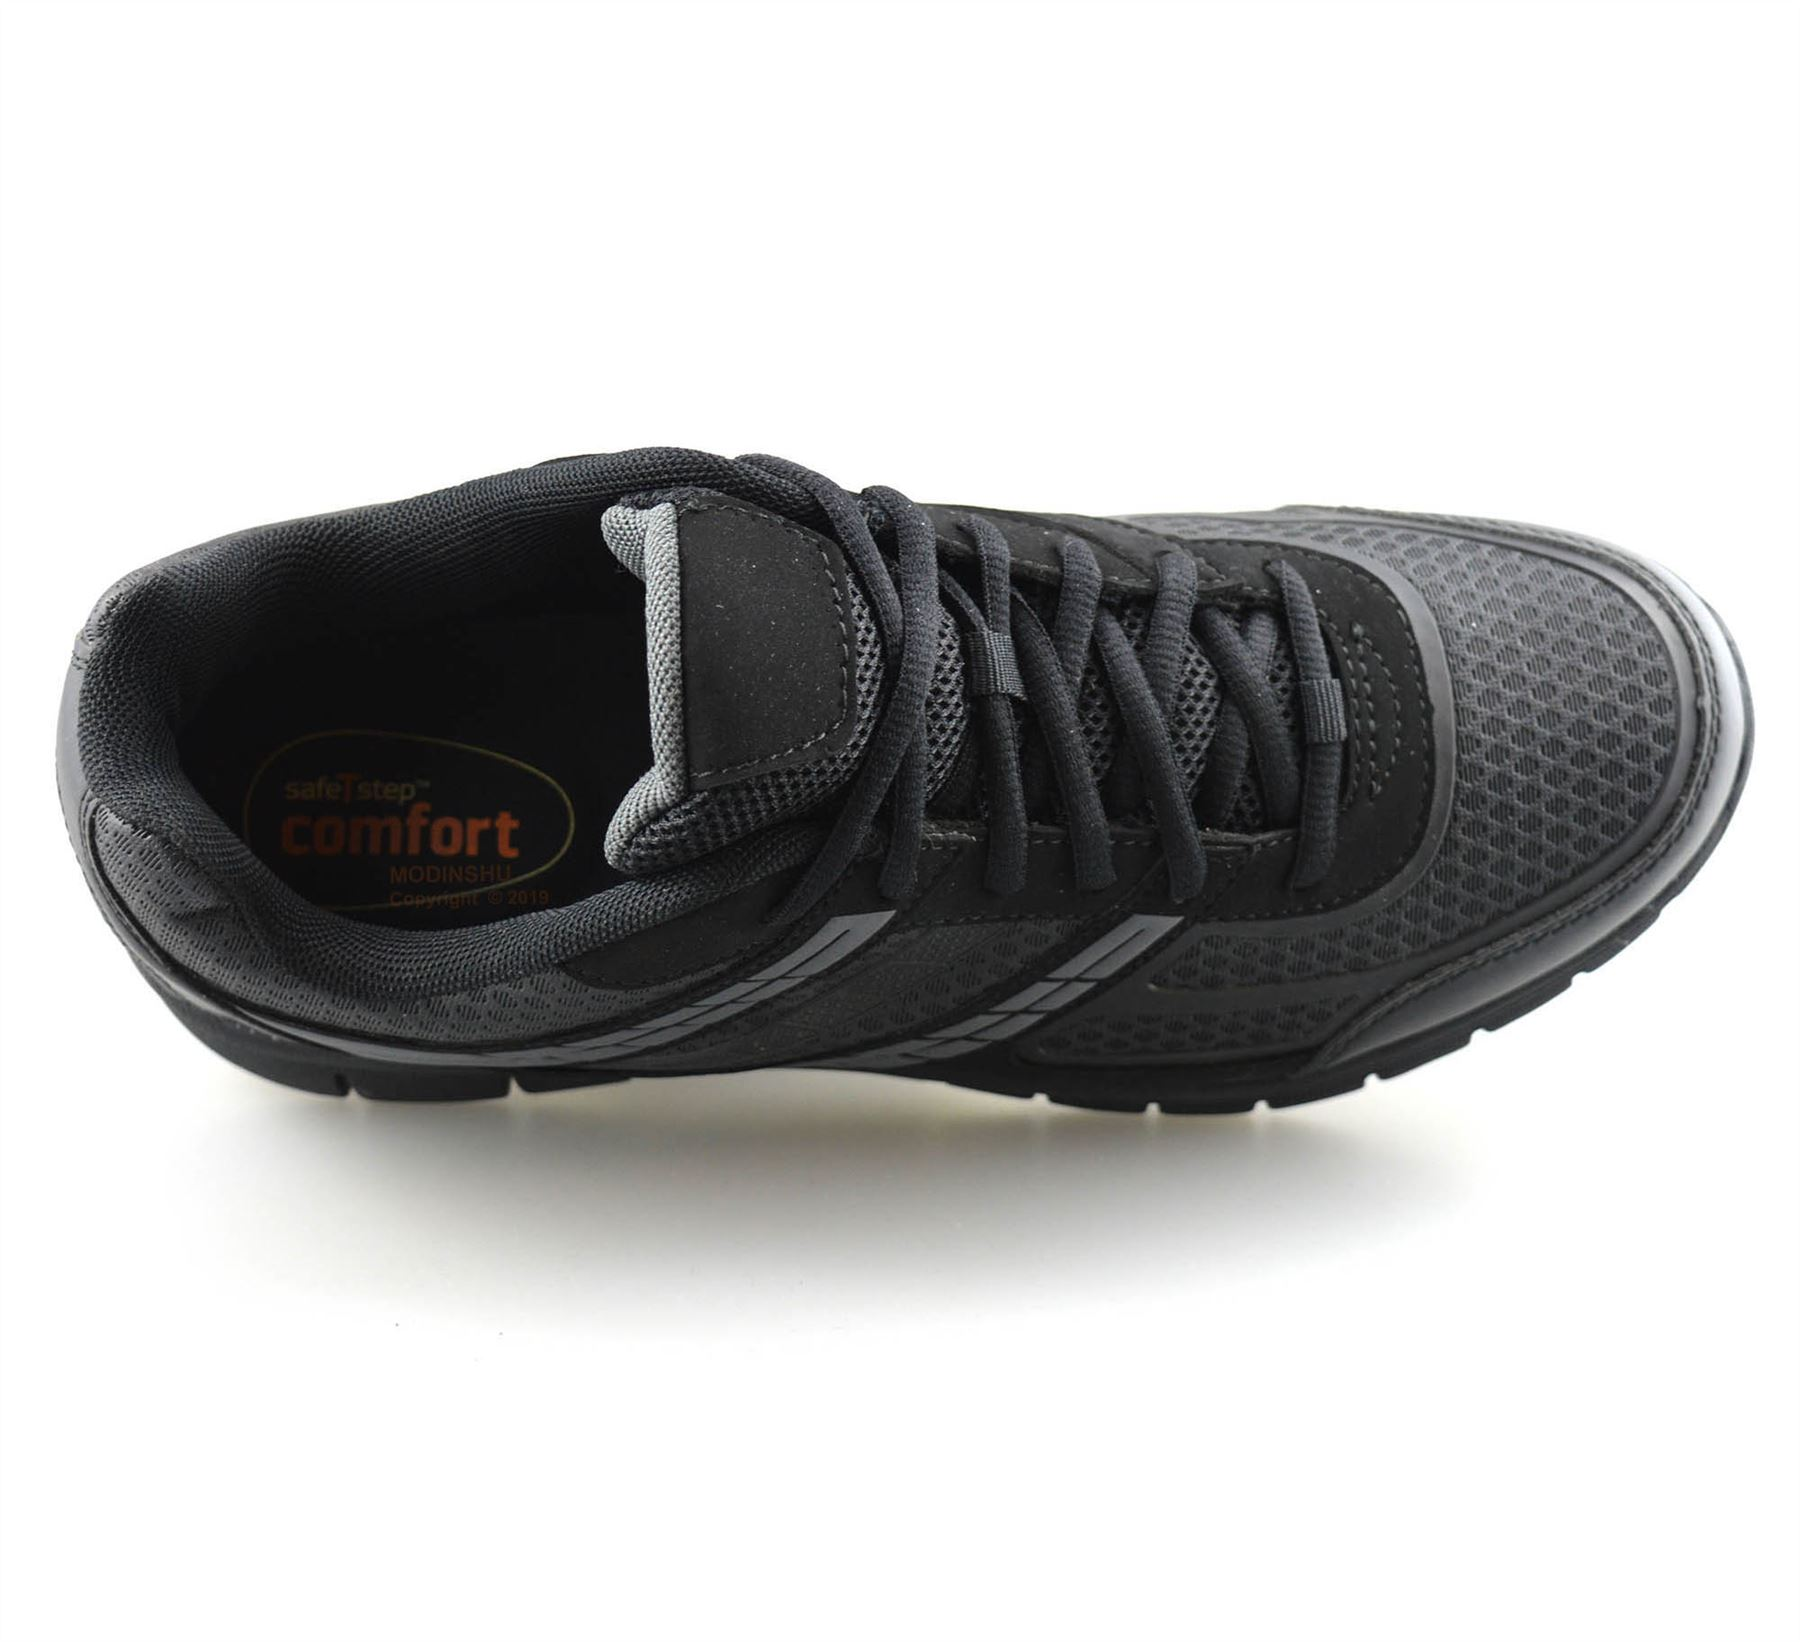 Mens-Casual-Lace-Up-Non-Slip-Memory-Foam-Walking-Hiking-Work-Trainers-Shoes-Size thumbnail 14